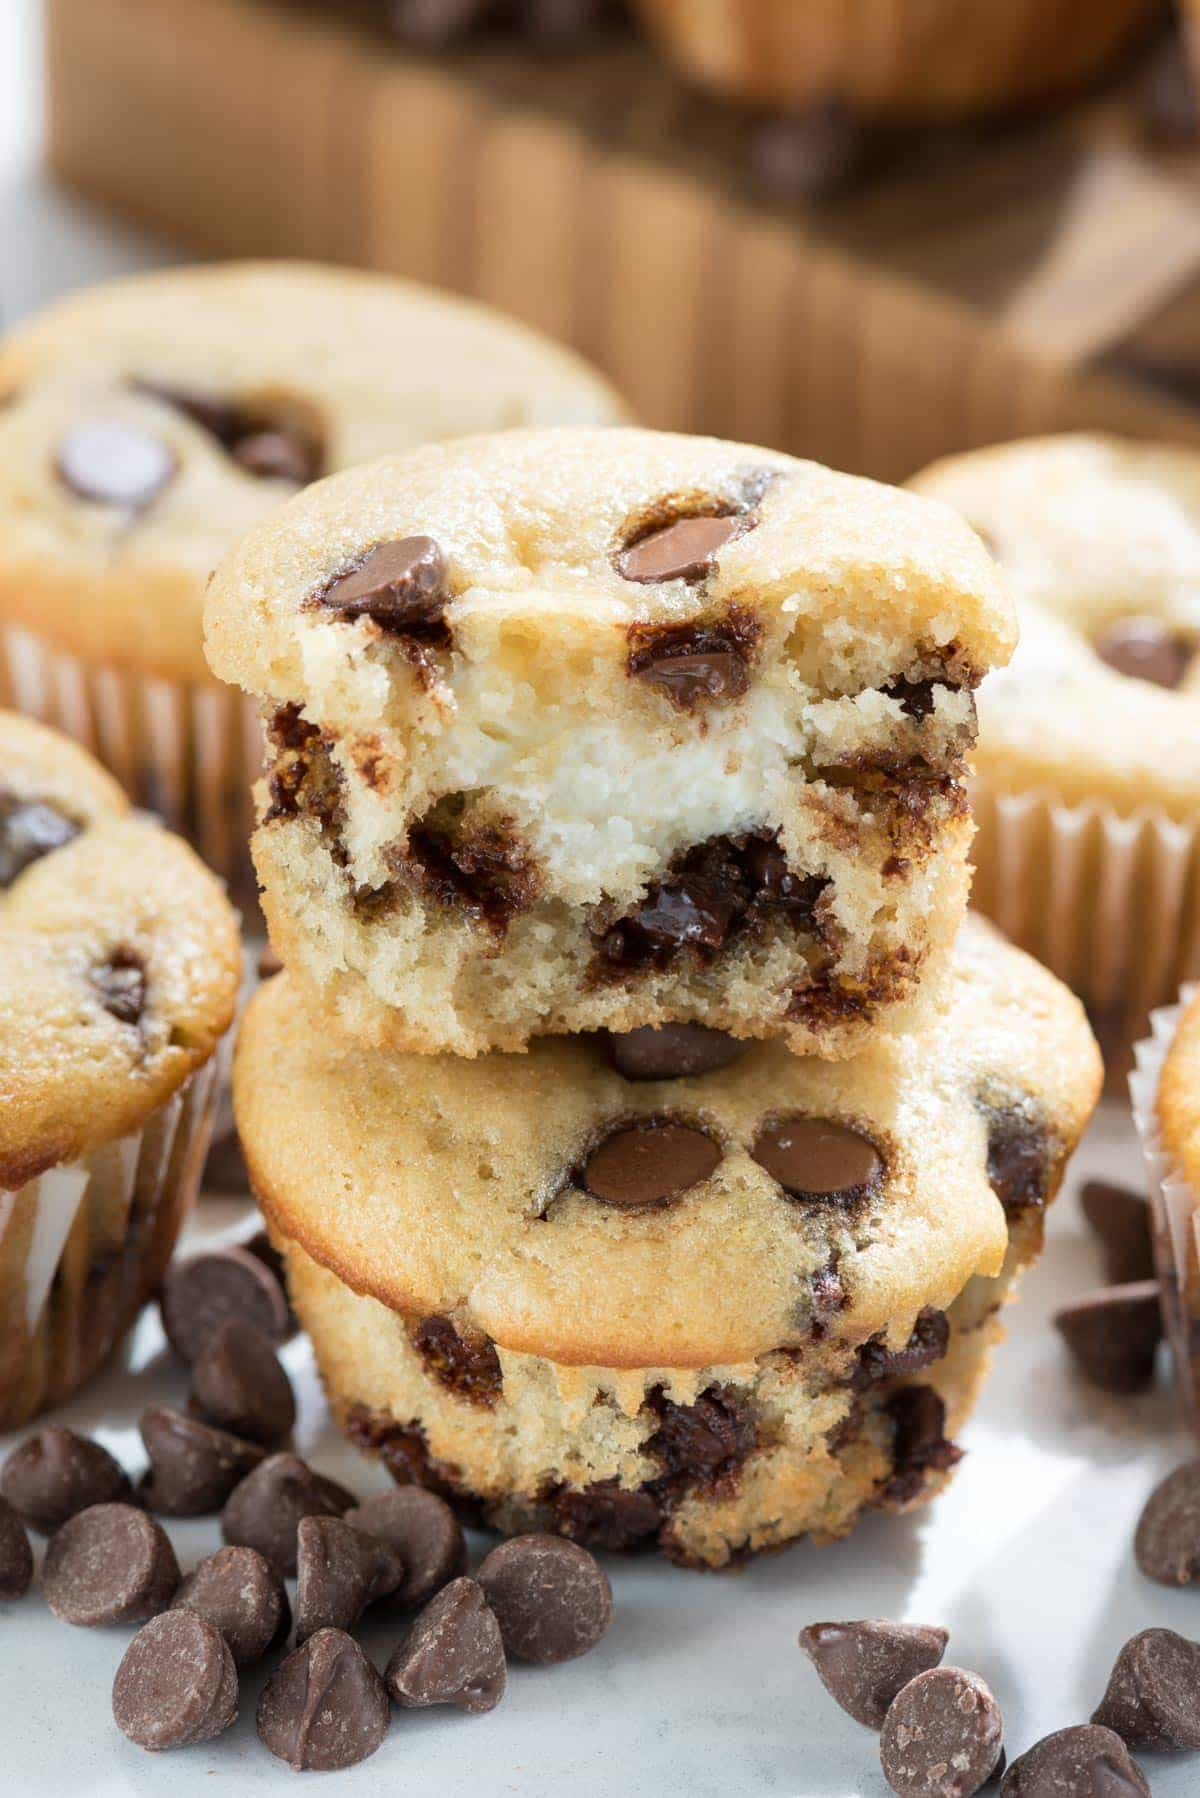 Cream Cheese Filled Chocolate Chip Muffins Recipe